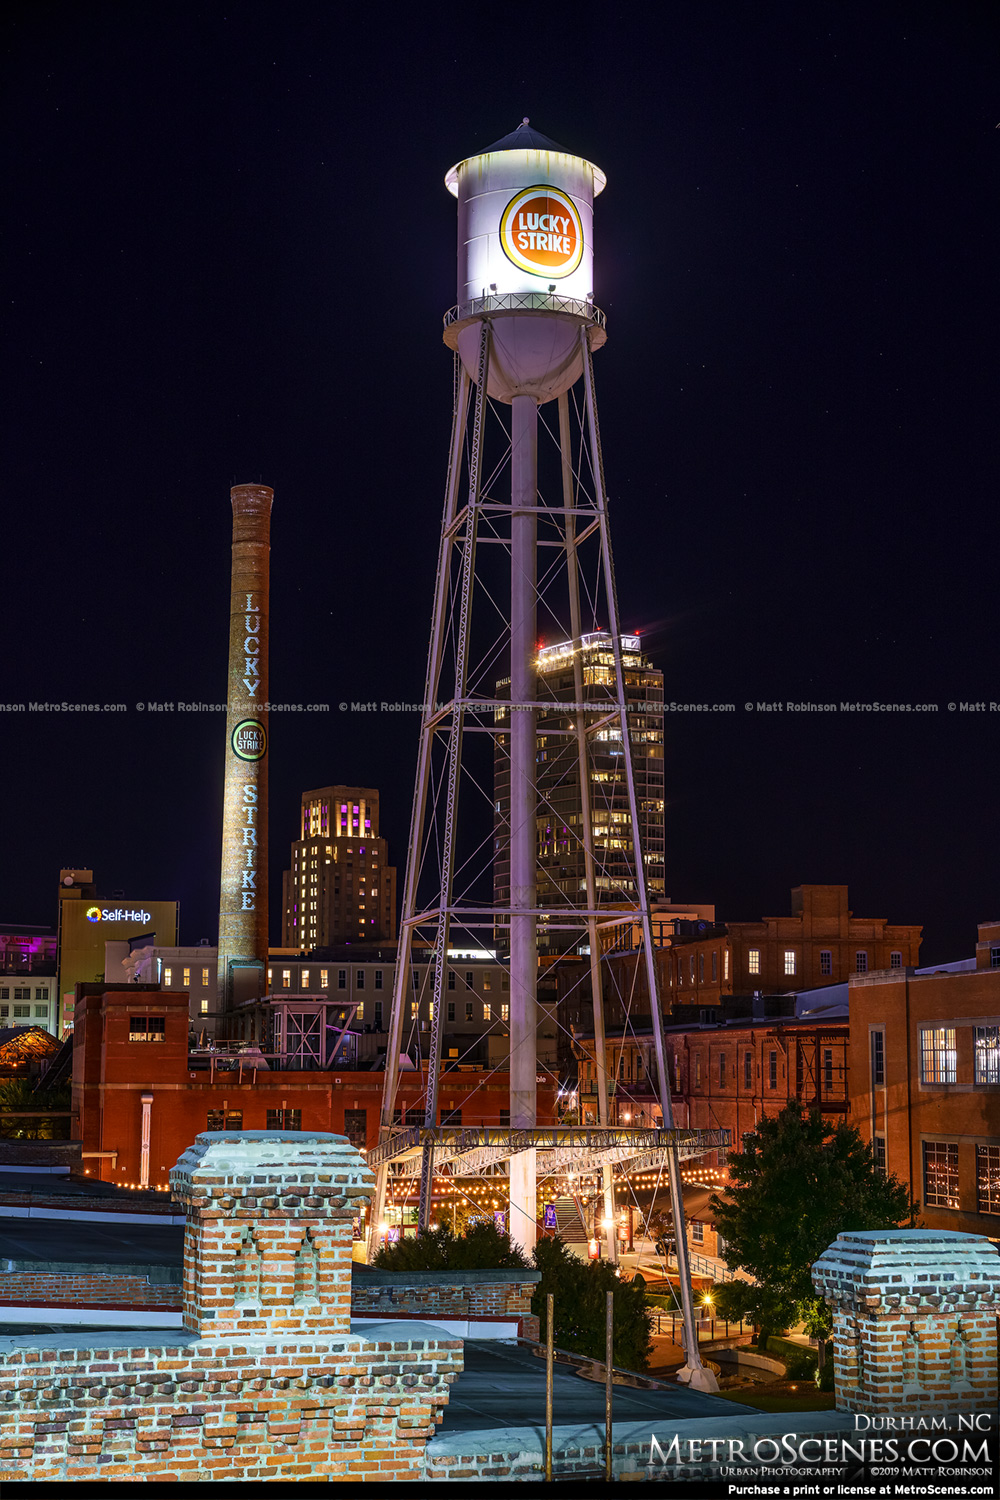 Downtown Durham at night 2019